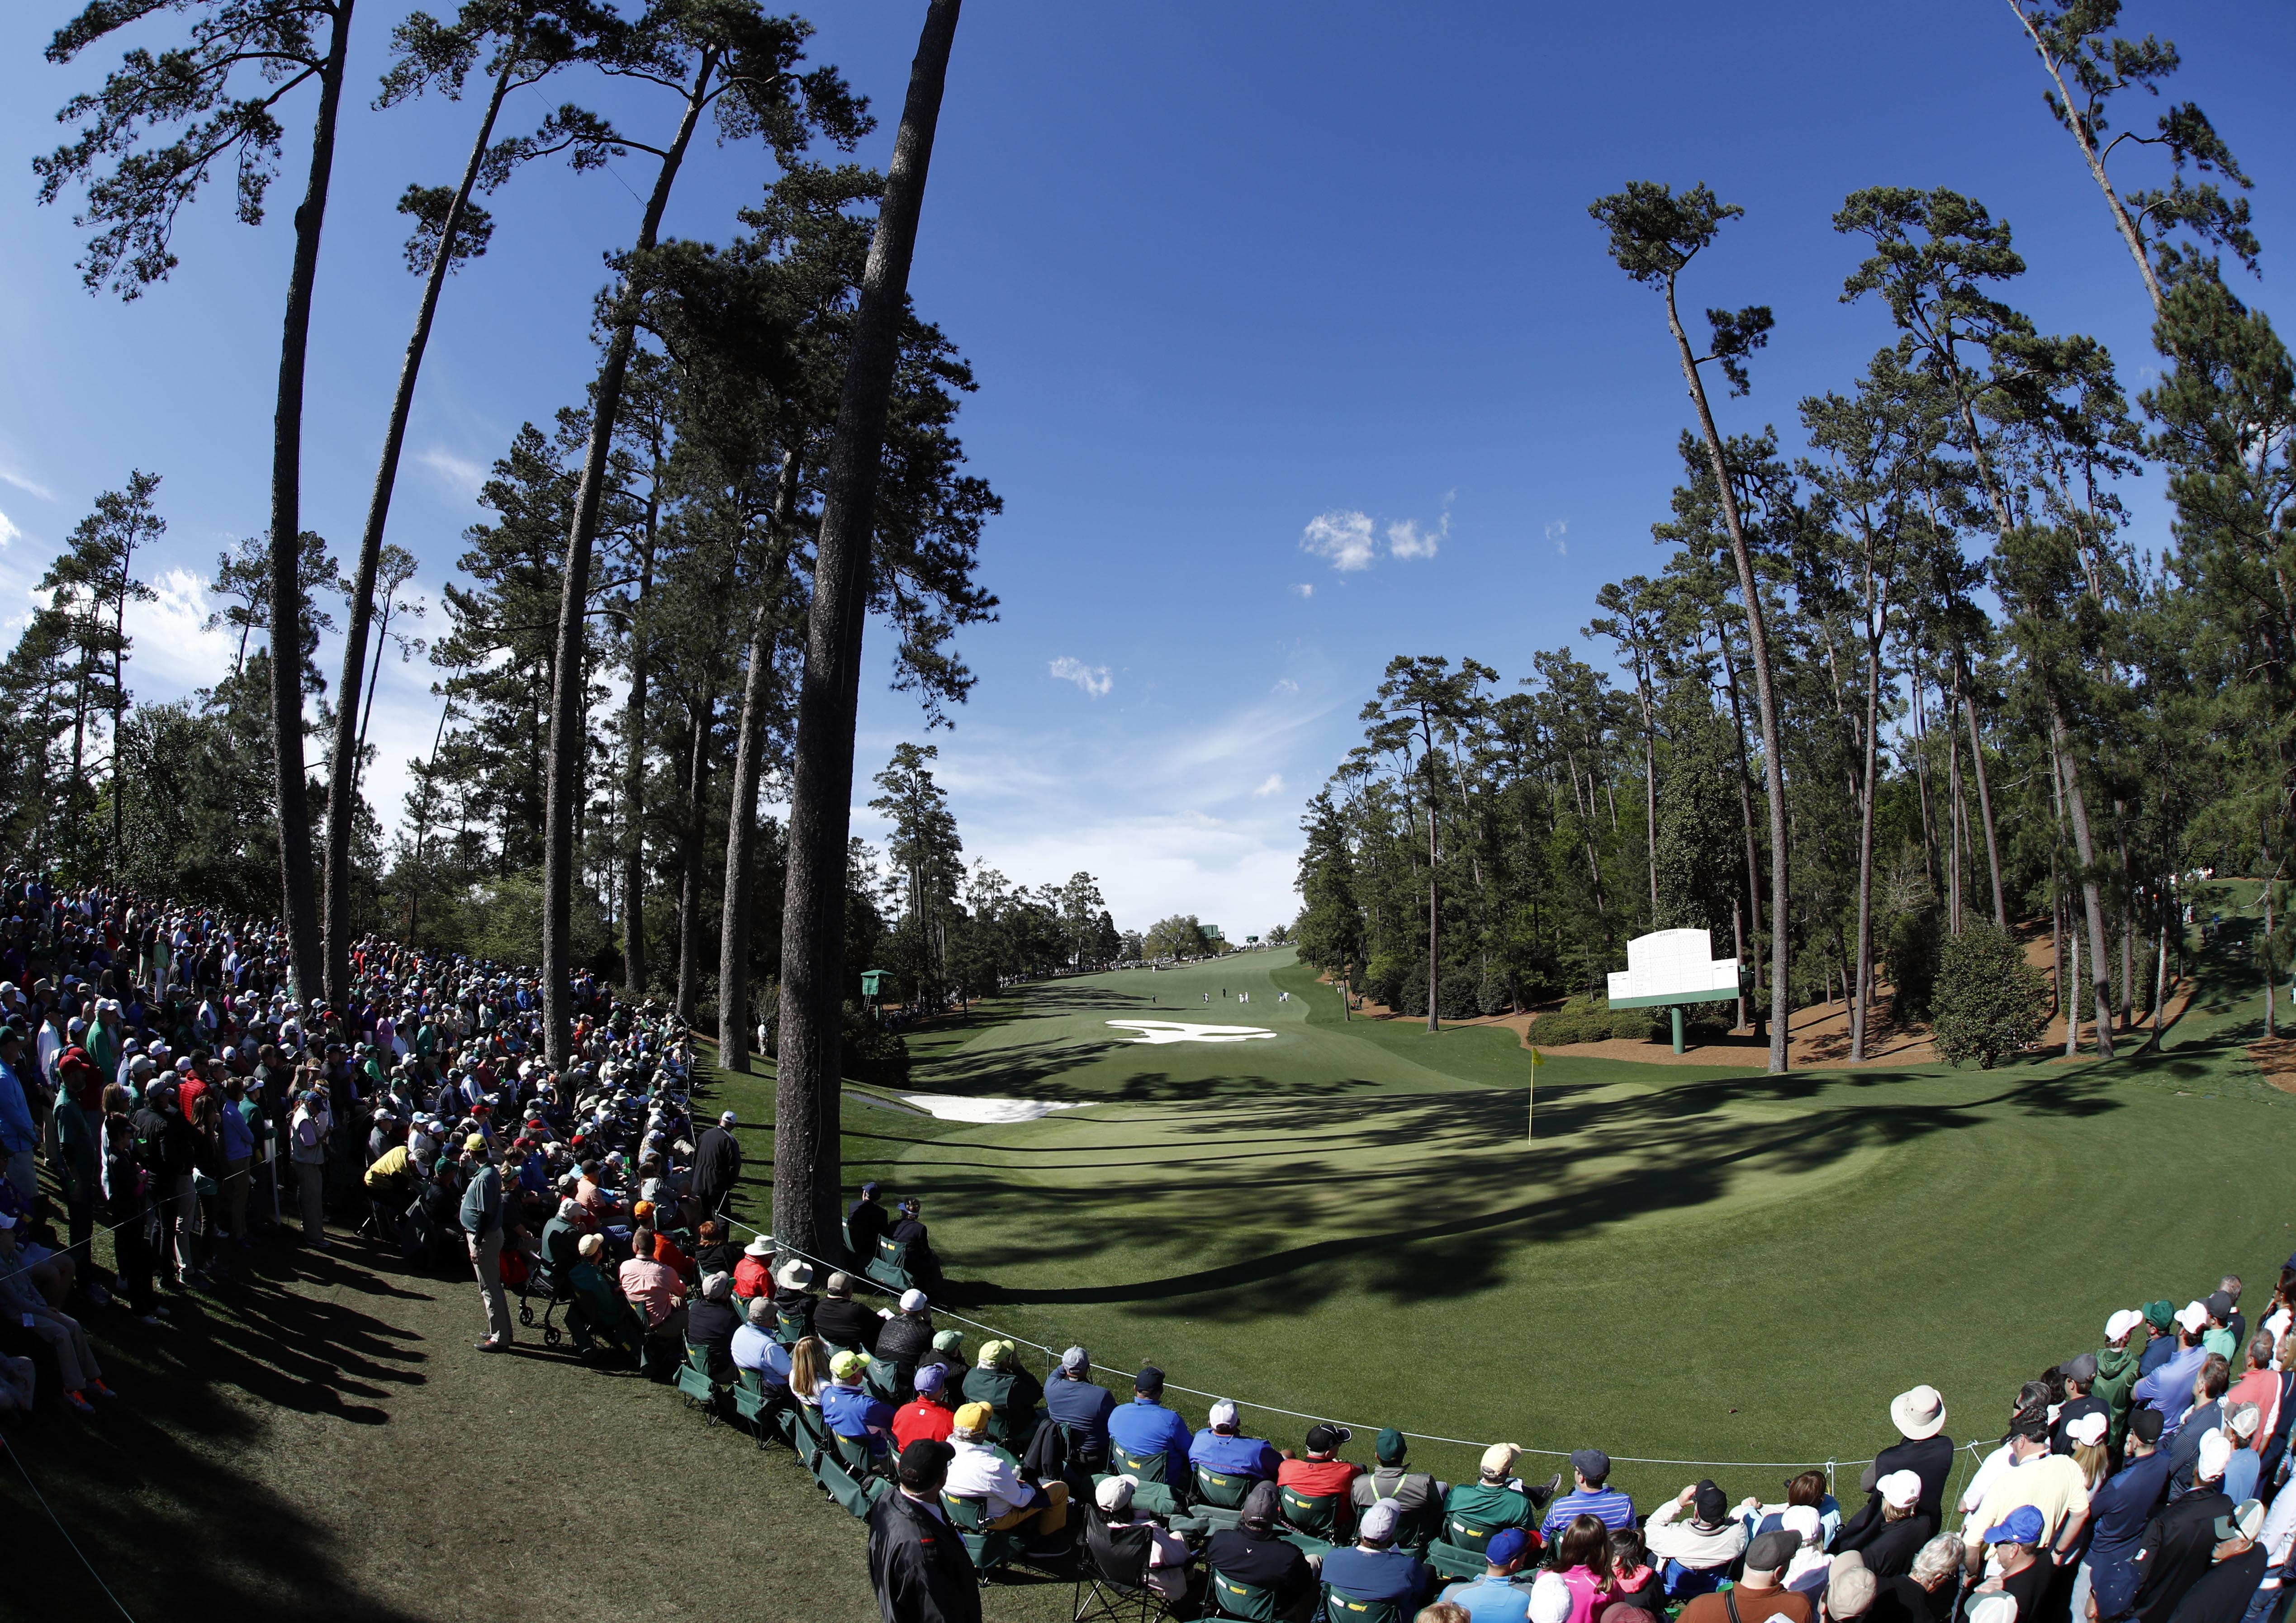 Created At 2017 04 09 1211 Peak Tram Sky Pass Roundtrip Ride Terrace Anak 3 11 Dailymailcouk Pairings And Tee Times For Final Round Of The Masters